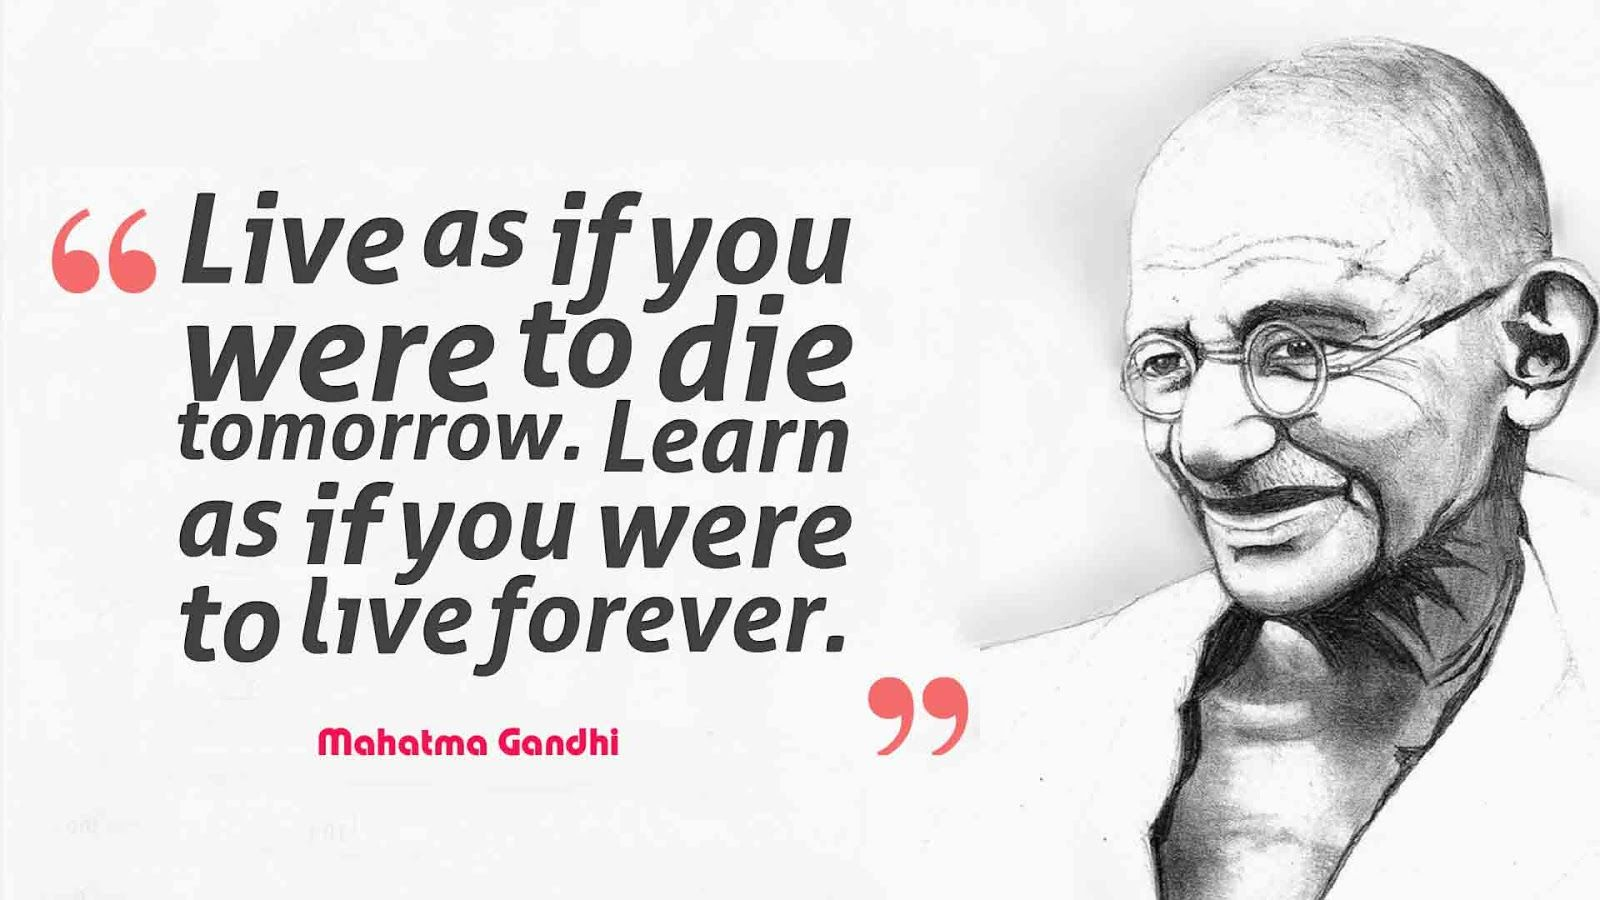 essay my great leader mahatma gandhi My favourite leader mahatma gandhi essay - online college essay writing company - get professional help with custom essays, research papers, reviews and proposals with benefits quality paper writing and editing help - we help students to get custom paper assignments plagiarism free the leading student writing help - we help students to get.